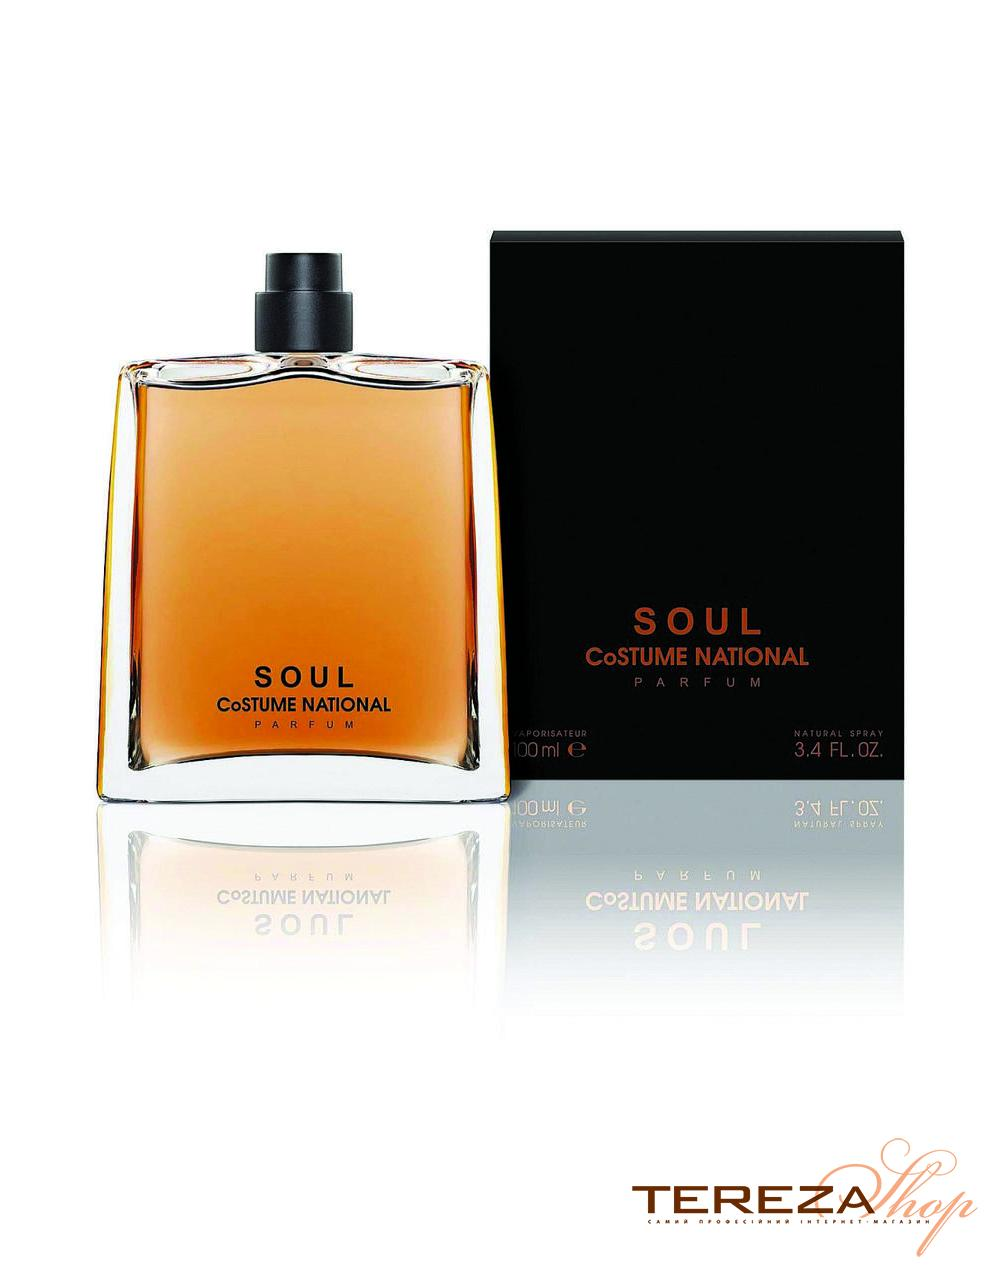 SOUL PARFUM 100ml CoSTUME NATIONAL | Tereza Shop